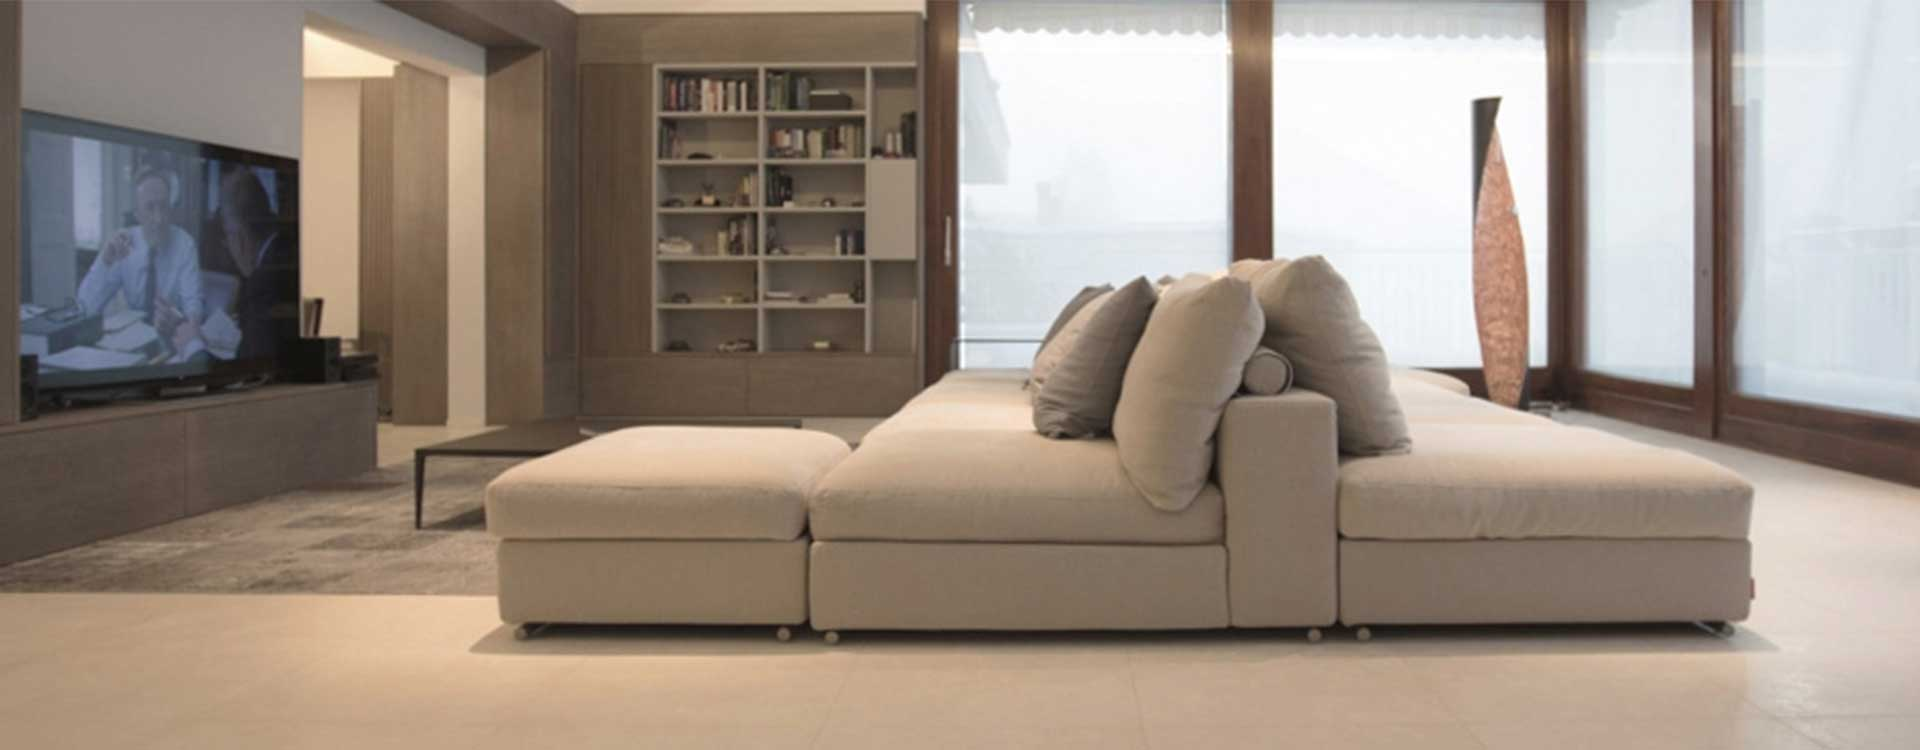 Modular sofa by Flexform realized in island mode for large living room